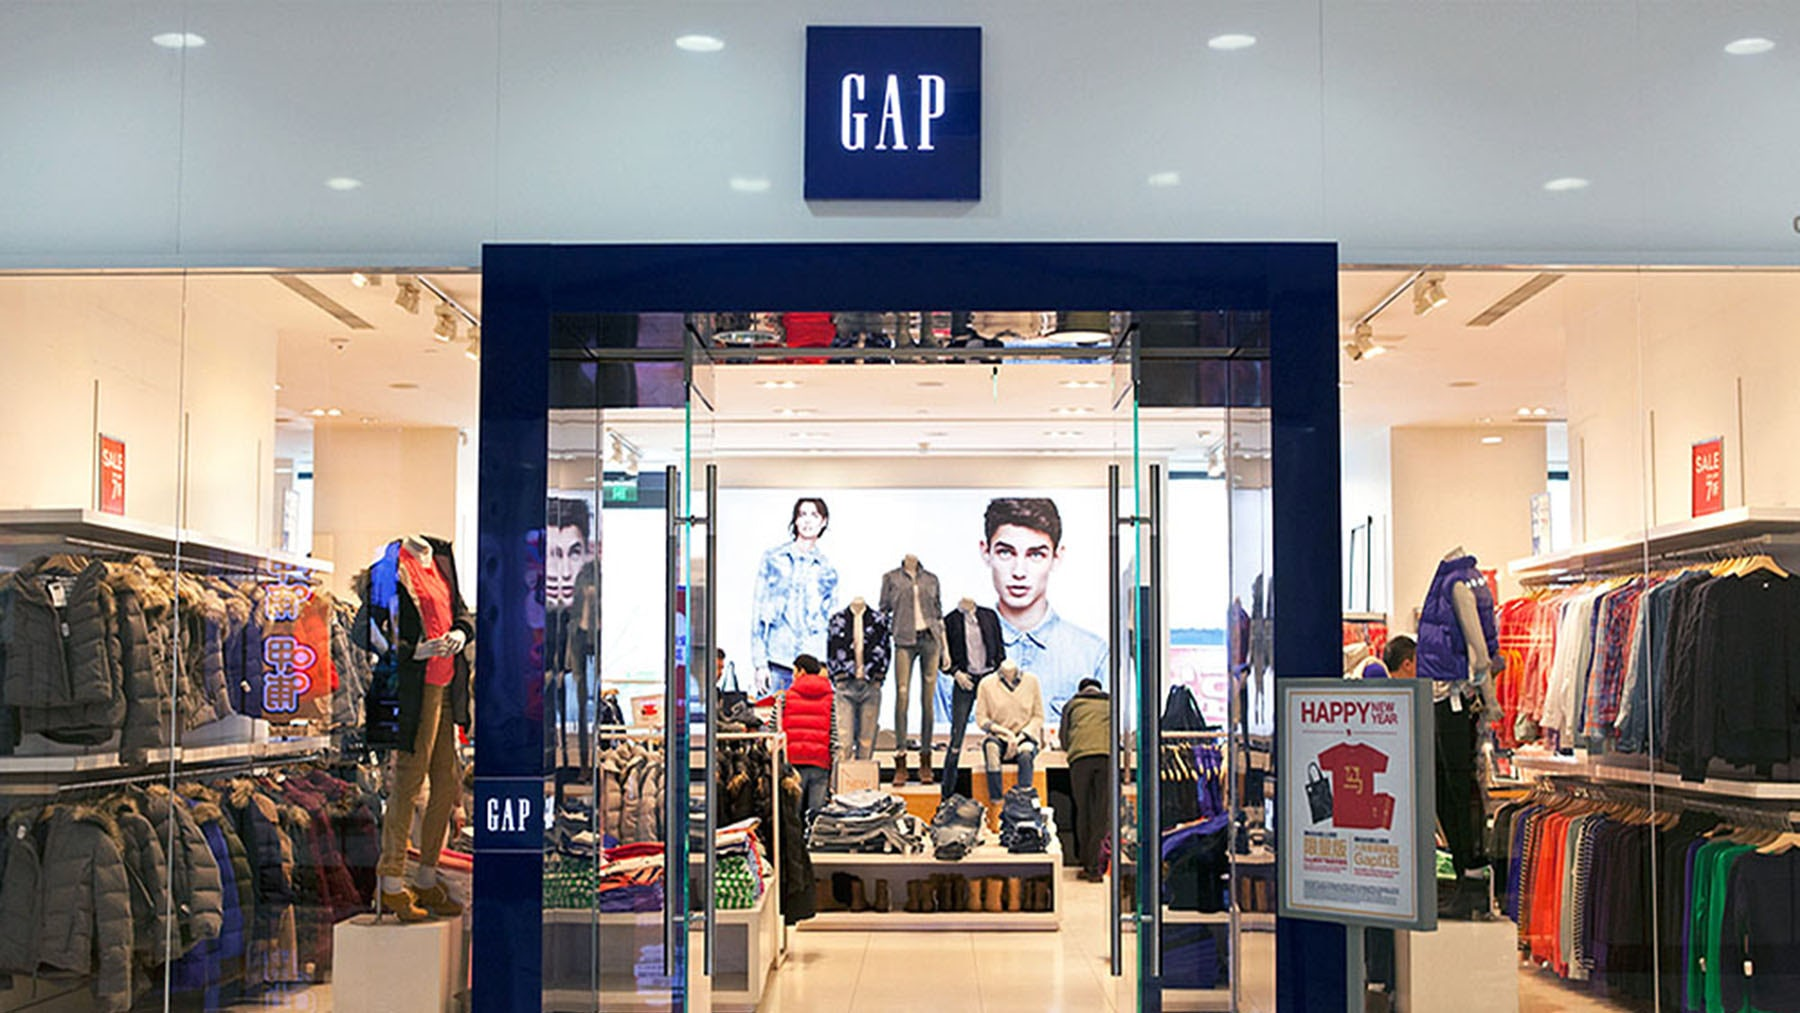 Article cover of Gap Expands Entry-Level Program to Help Make Staff More Diverse